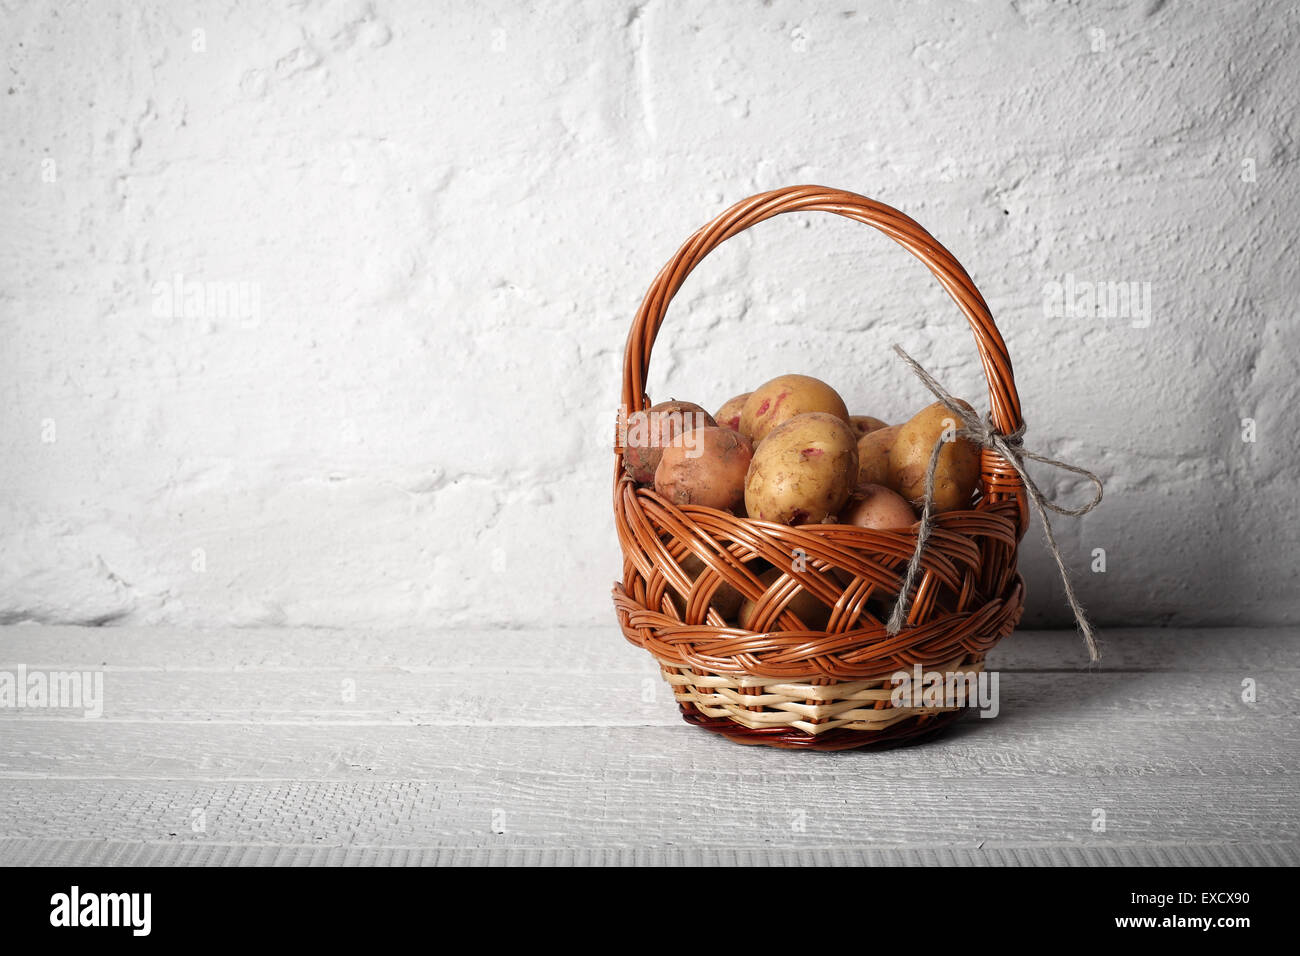 Basket with potatoes on old white planks a background - Stock Image